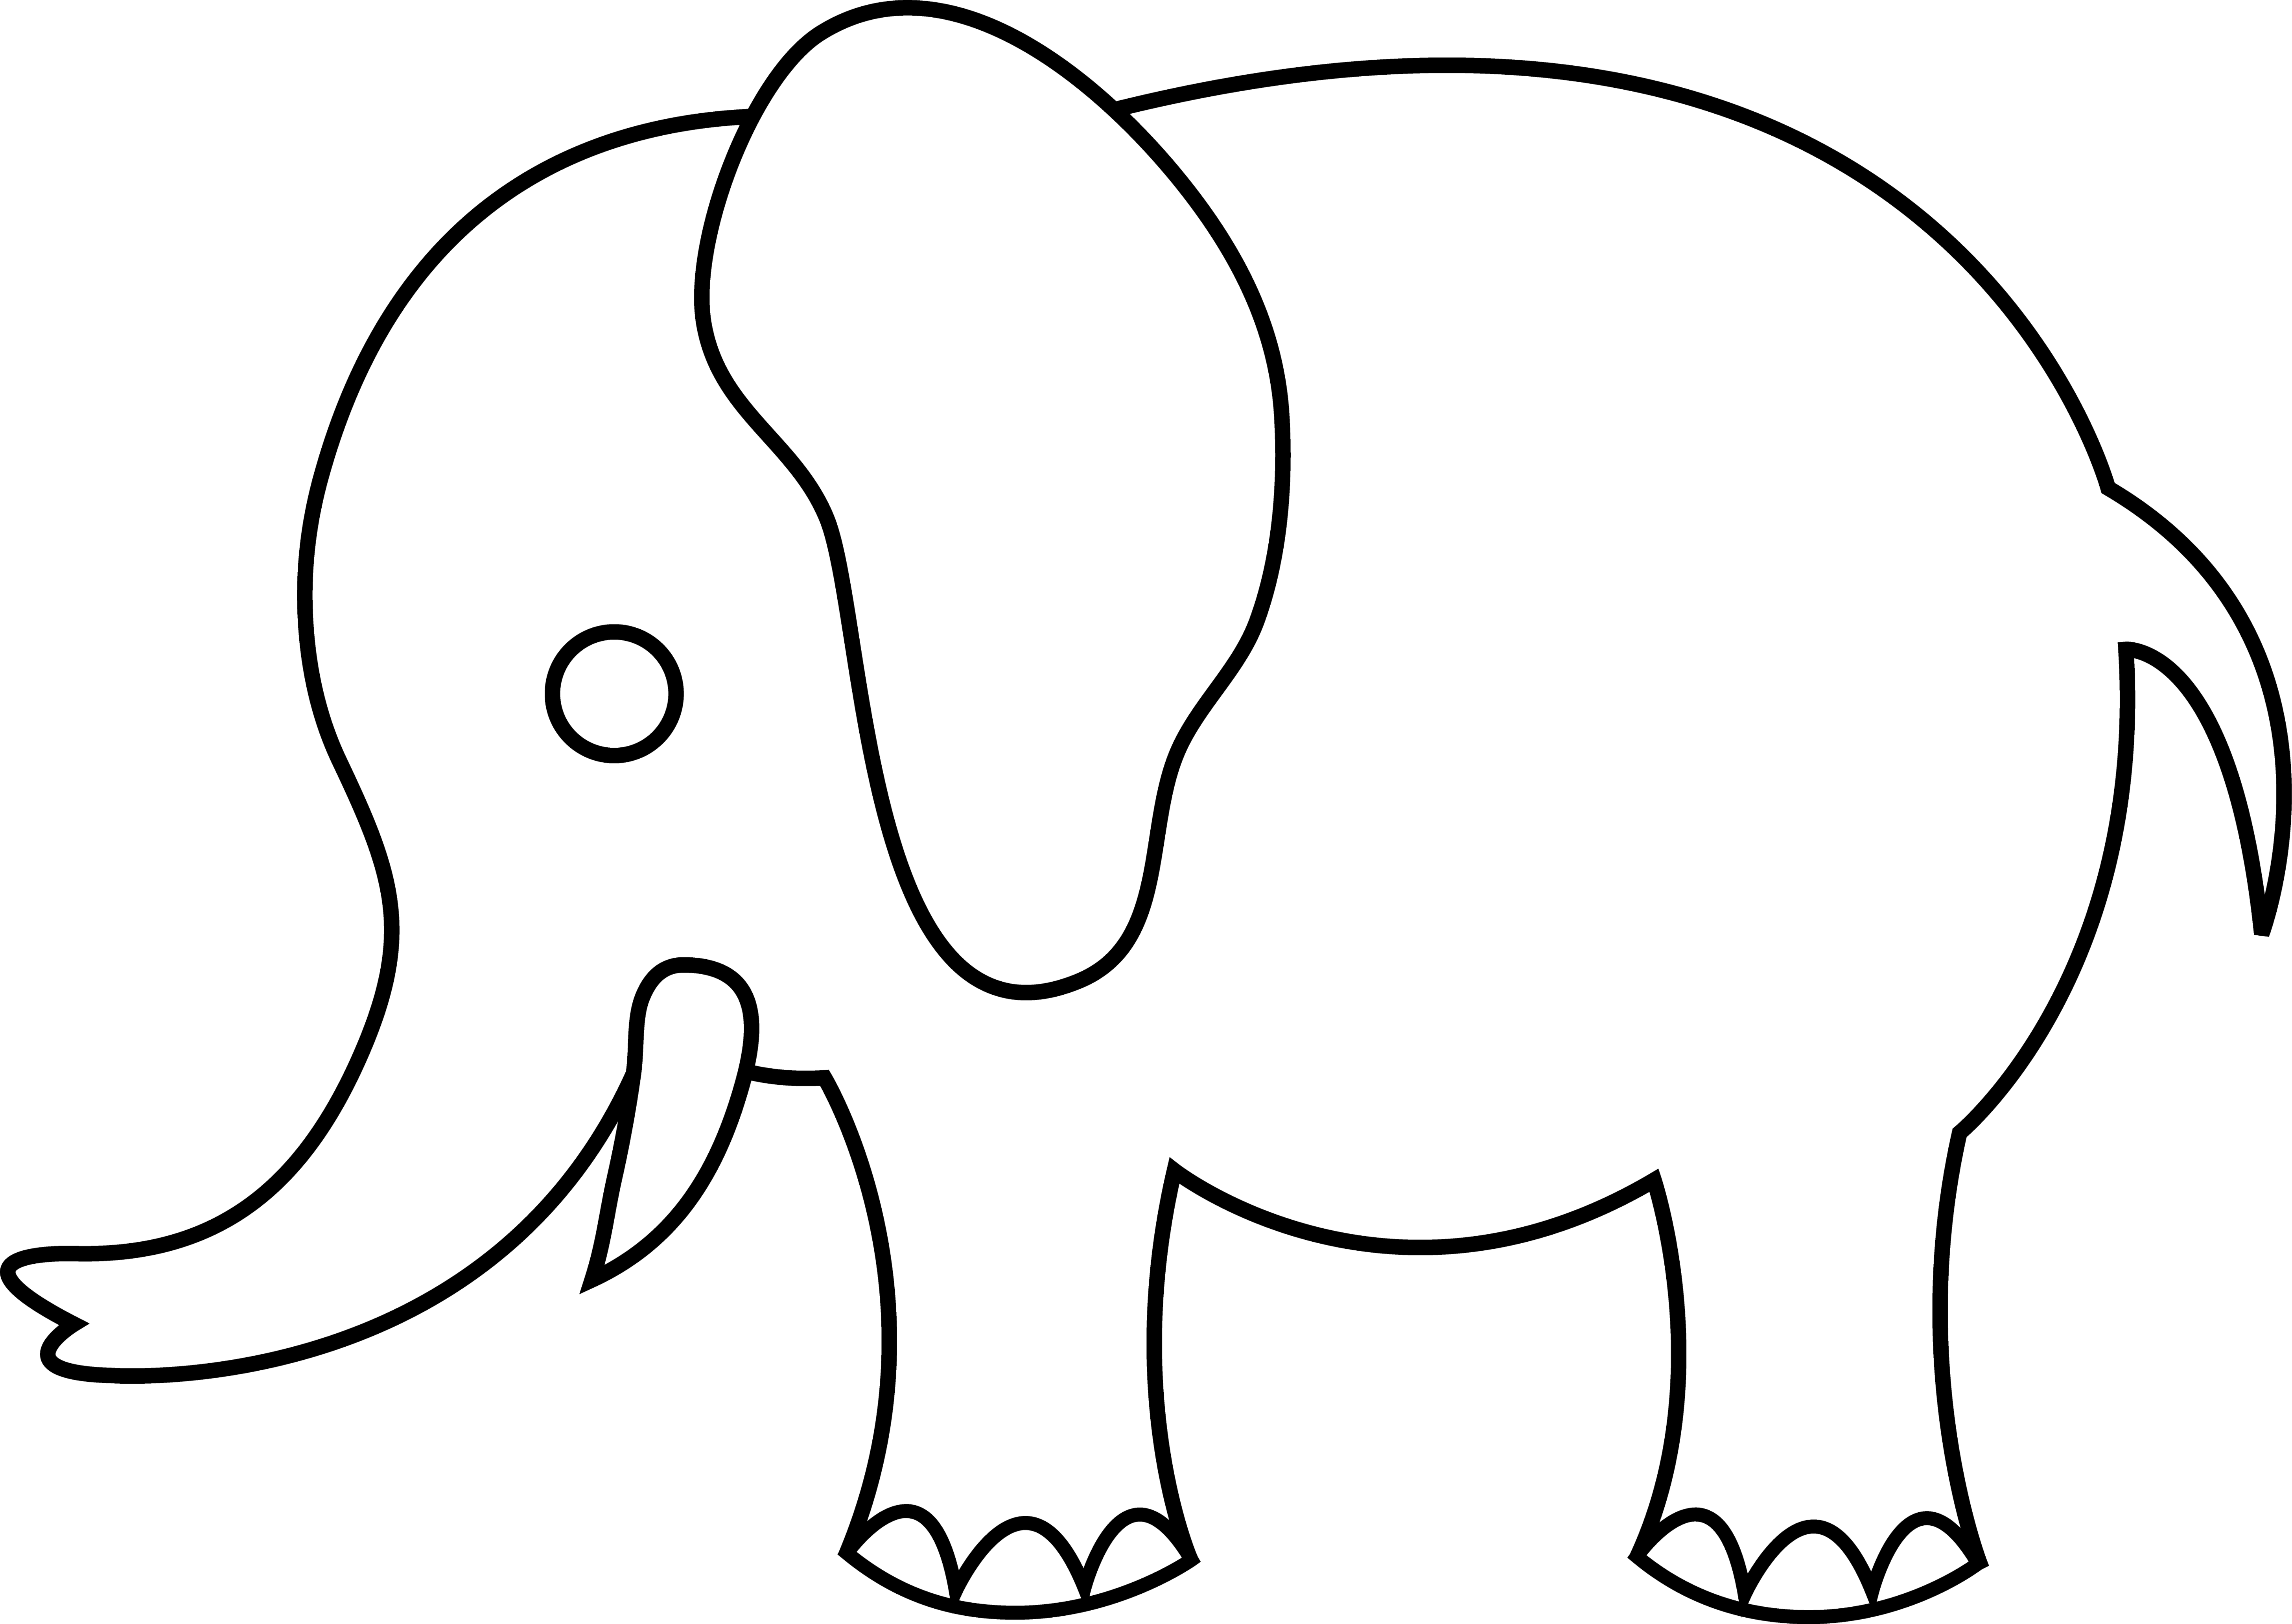 Free Elephant Outline Cliparts, Download Free Clip Art, Free Clip.